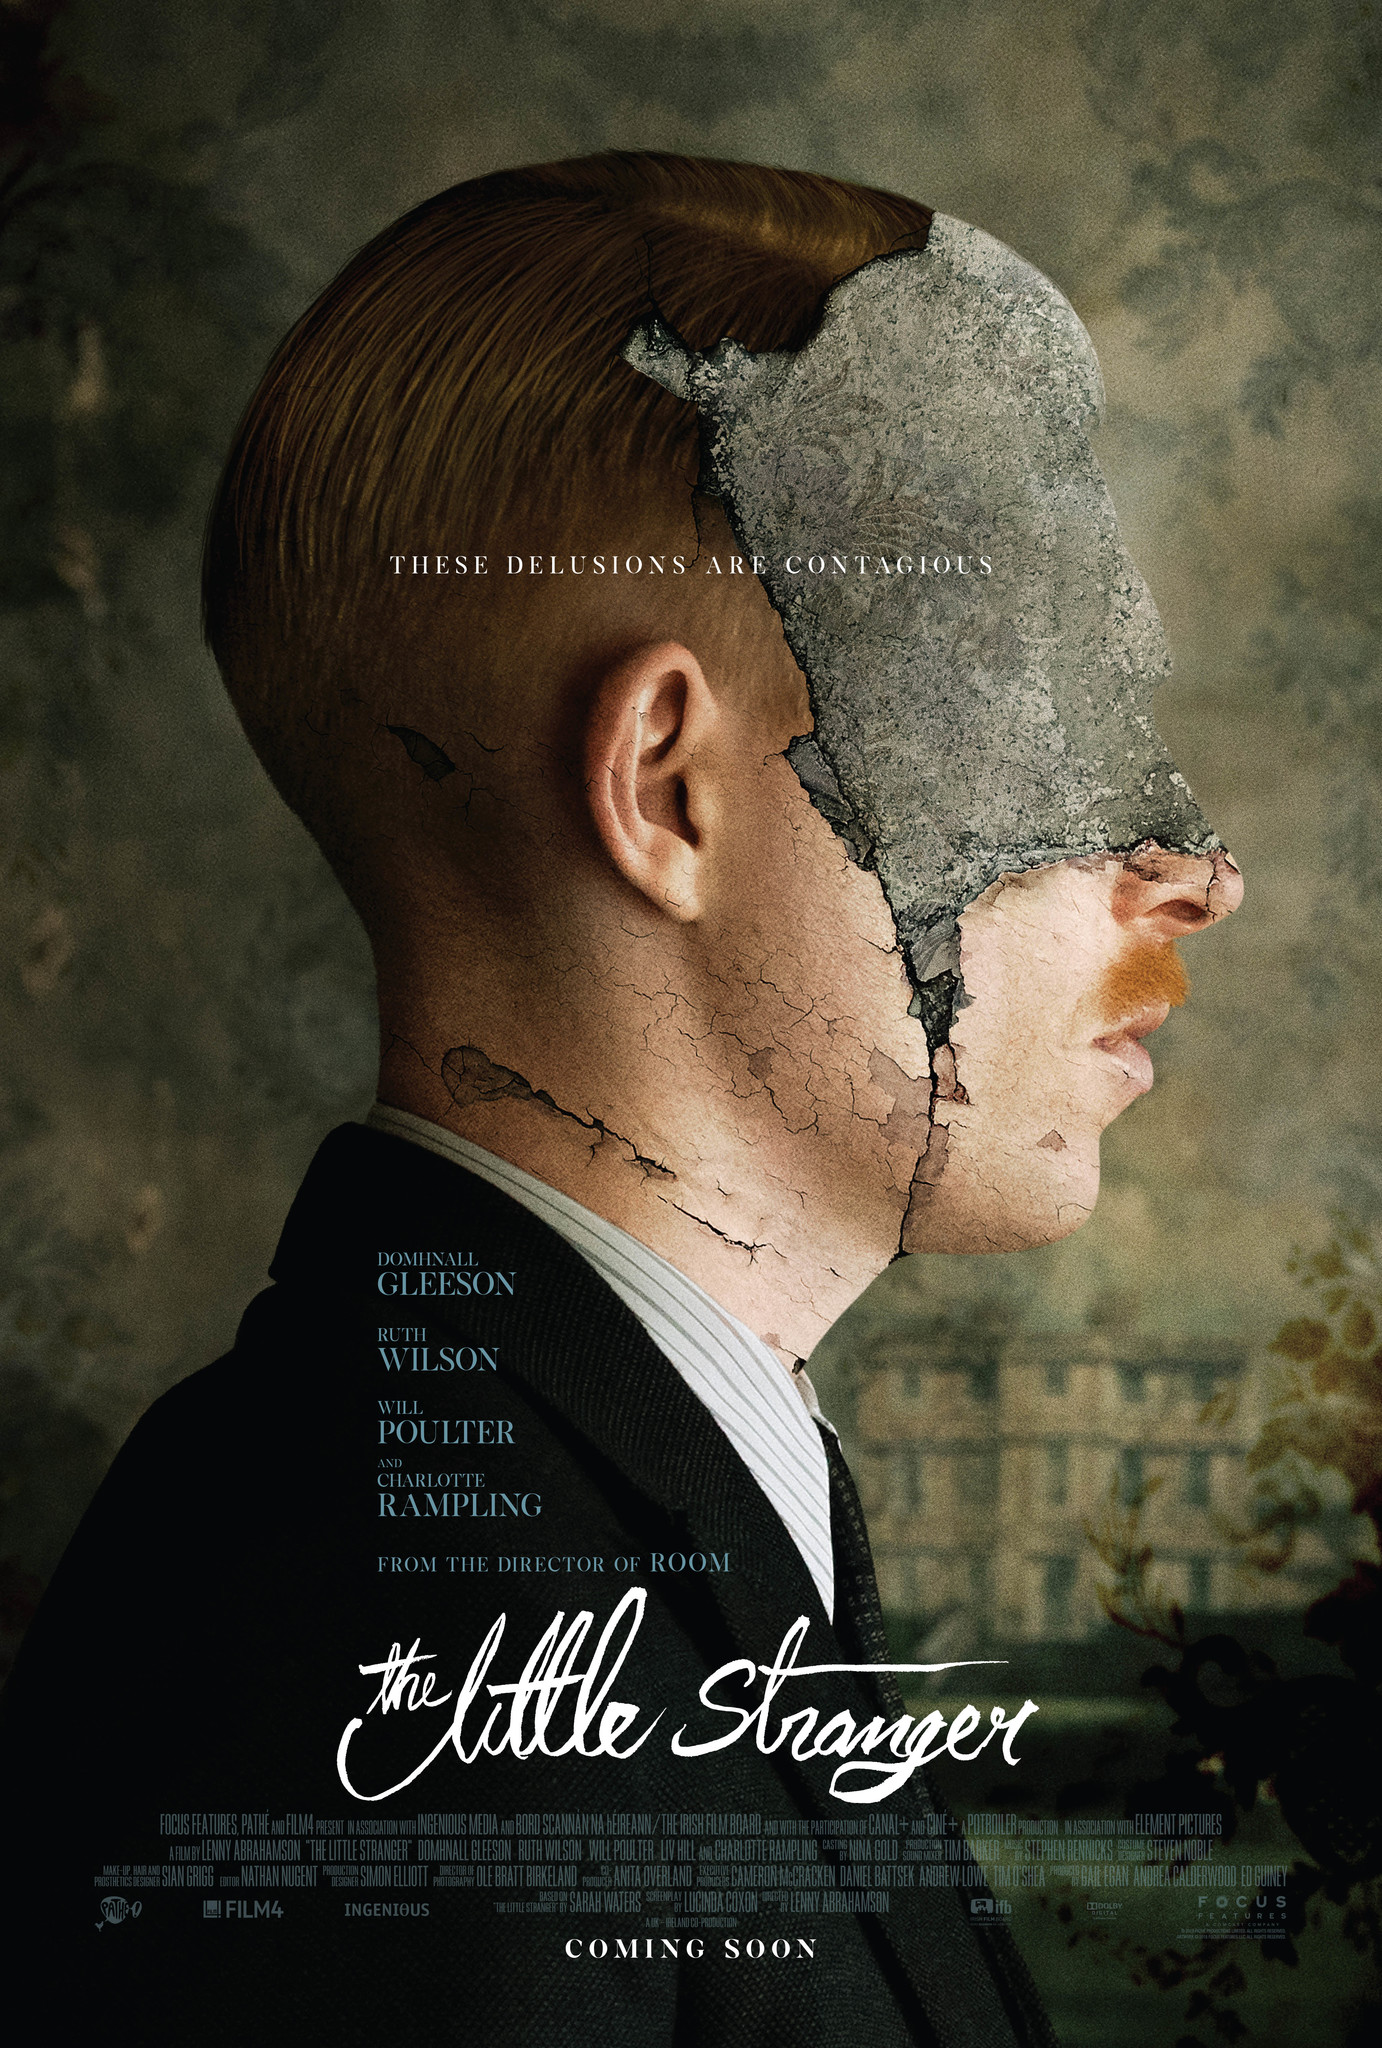 The Little Stranger (2018) - Directed by: Lenny AbrahamsonStarring: Domhnall Gleeson, Ruth Wilson, Will Poulter, Charlotte RamplingRated: R for Some Disturbing Bloody ImagesRunning Time: 1 h 51 mTMM Score: 3 stars out of 5STRENGTHS: Some Acting, Some Directing, TwistWEAKNESSES: Pacing, Uneven Writing, Some Acting, How Twist Was Handled